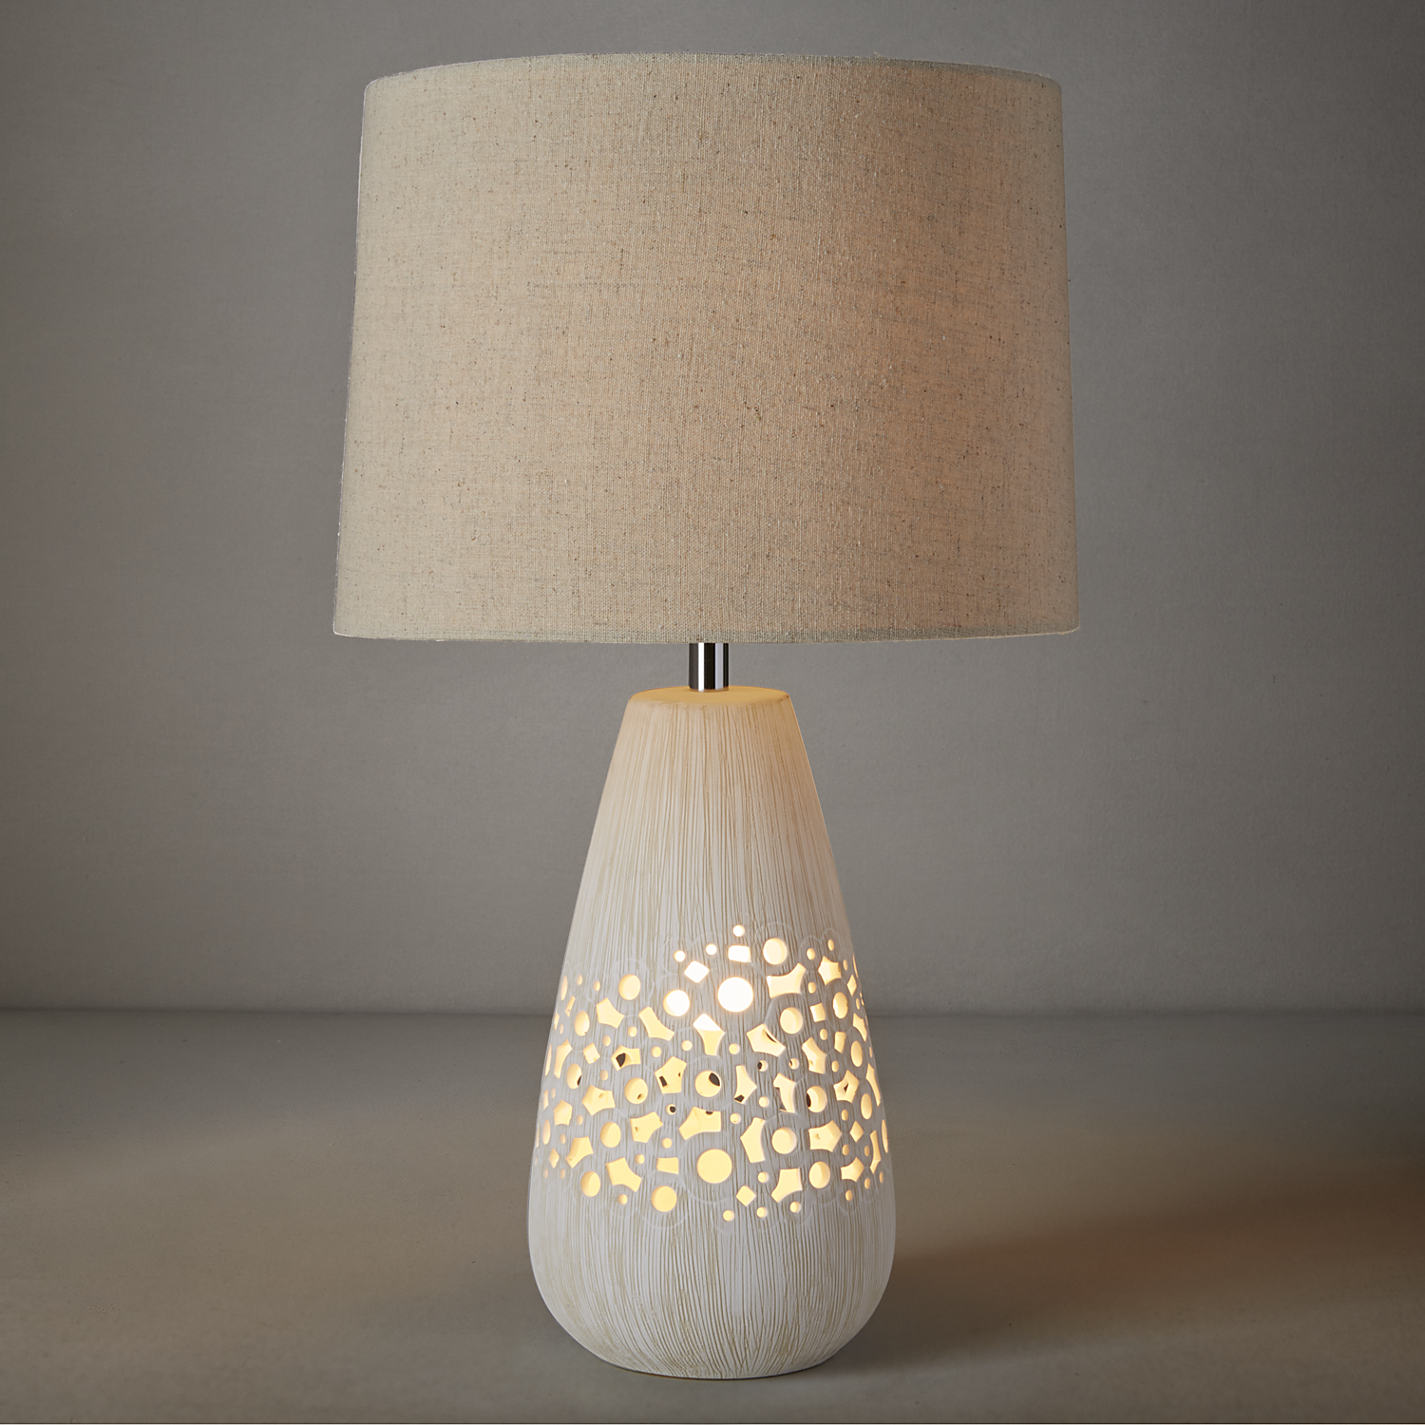 Buy john lewis melissa dual lit ceramic table lamp john lewis buy john lewis melissa dual lit ceramic table lamp online at johnlewis aloadofball Images